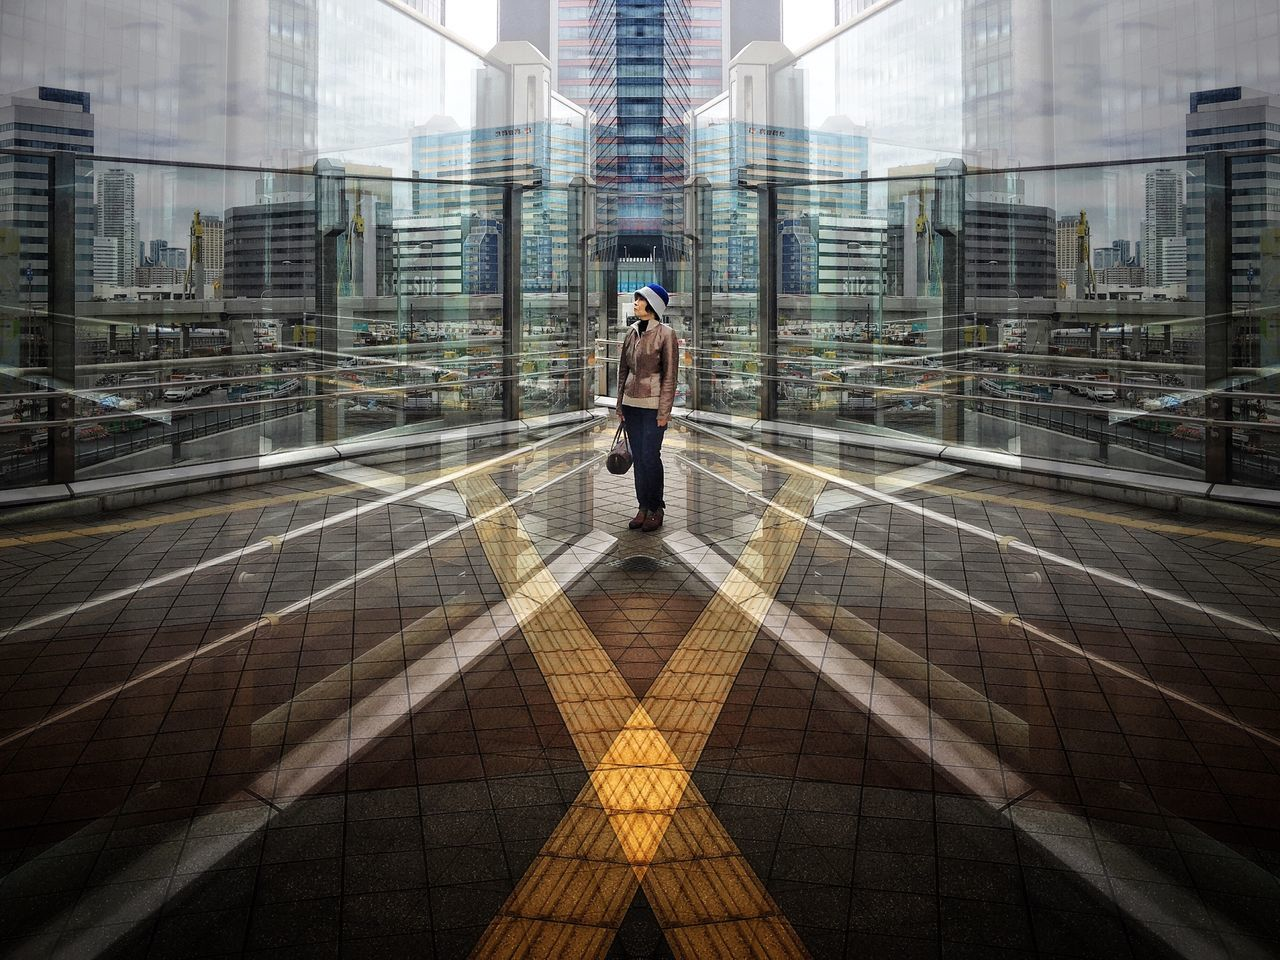 Reflections  The Architect - 2017 EyeEm Awards The Street Photographer - 2017 EyeEm Awards Street EyeEmNewHere Portrait Girl Woman Portrait Of A Woman Building Buildings Architecture Architecture_collection Architectural Detail Streetphoto_color Street Fashion Streetphotography Street Photography Light And Shadow Reflection Reflections Art Beautiful Pattern Urban Geometry Urban